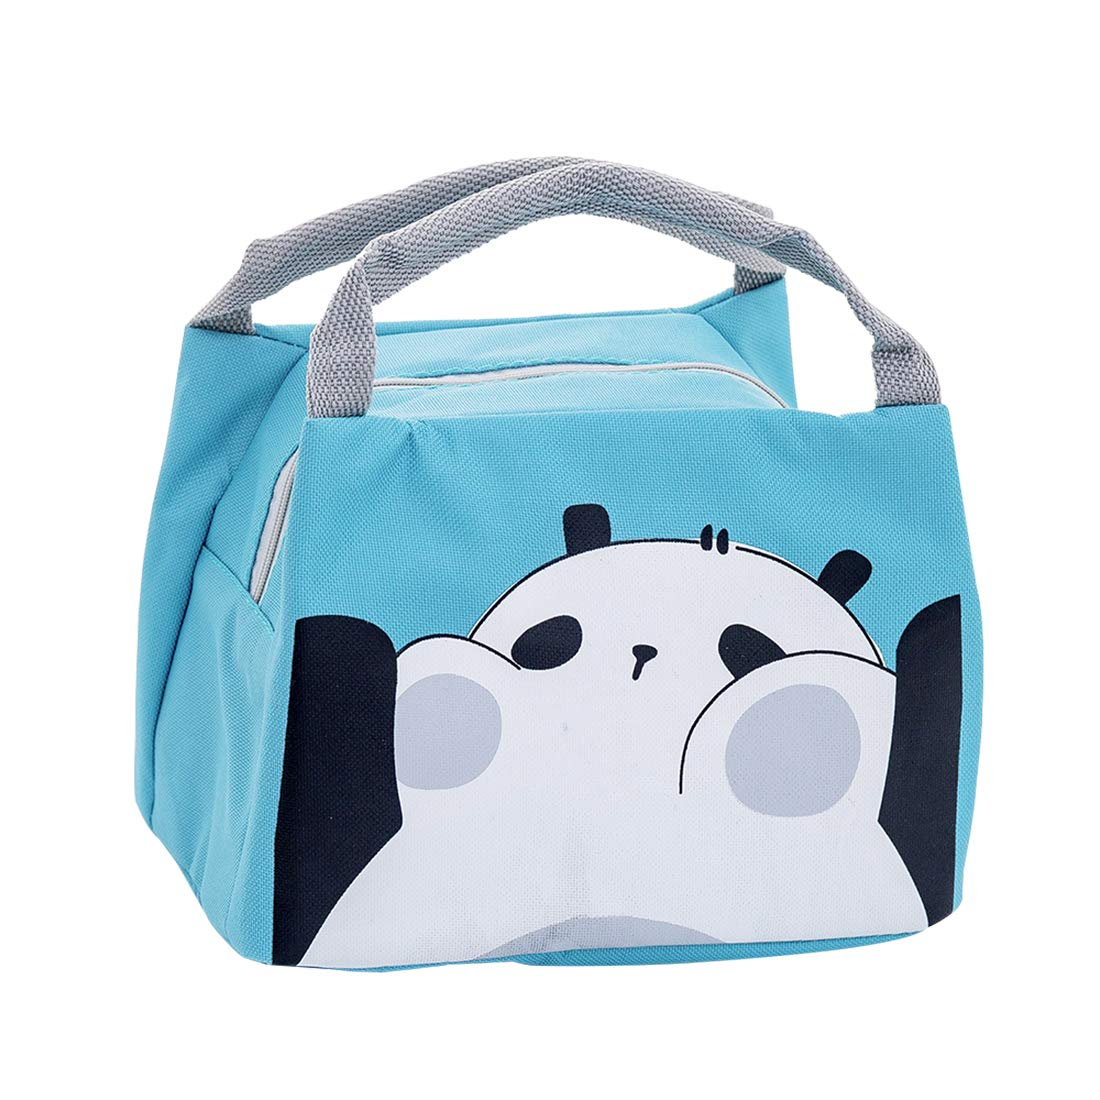 Oyachic Cute Thermal Lunch Bag Insulated Tote Leakproof Zipper Bag with Foil Liner for Office, School and Picnic (big mouth face)